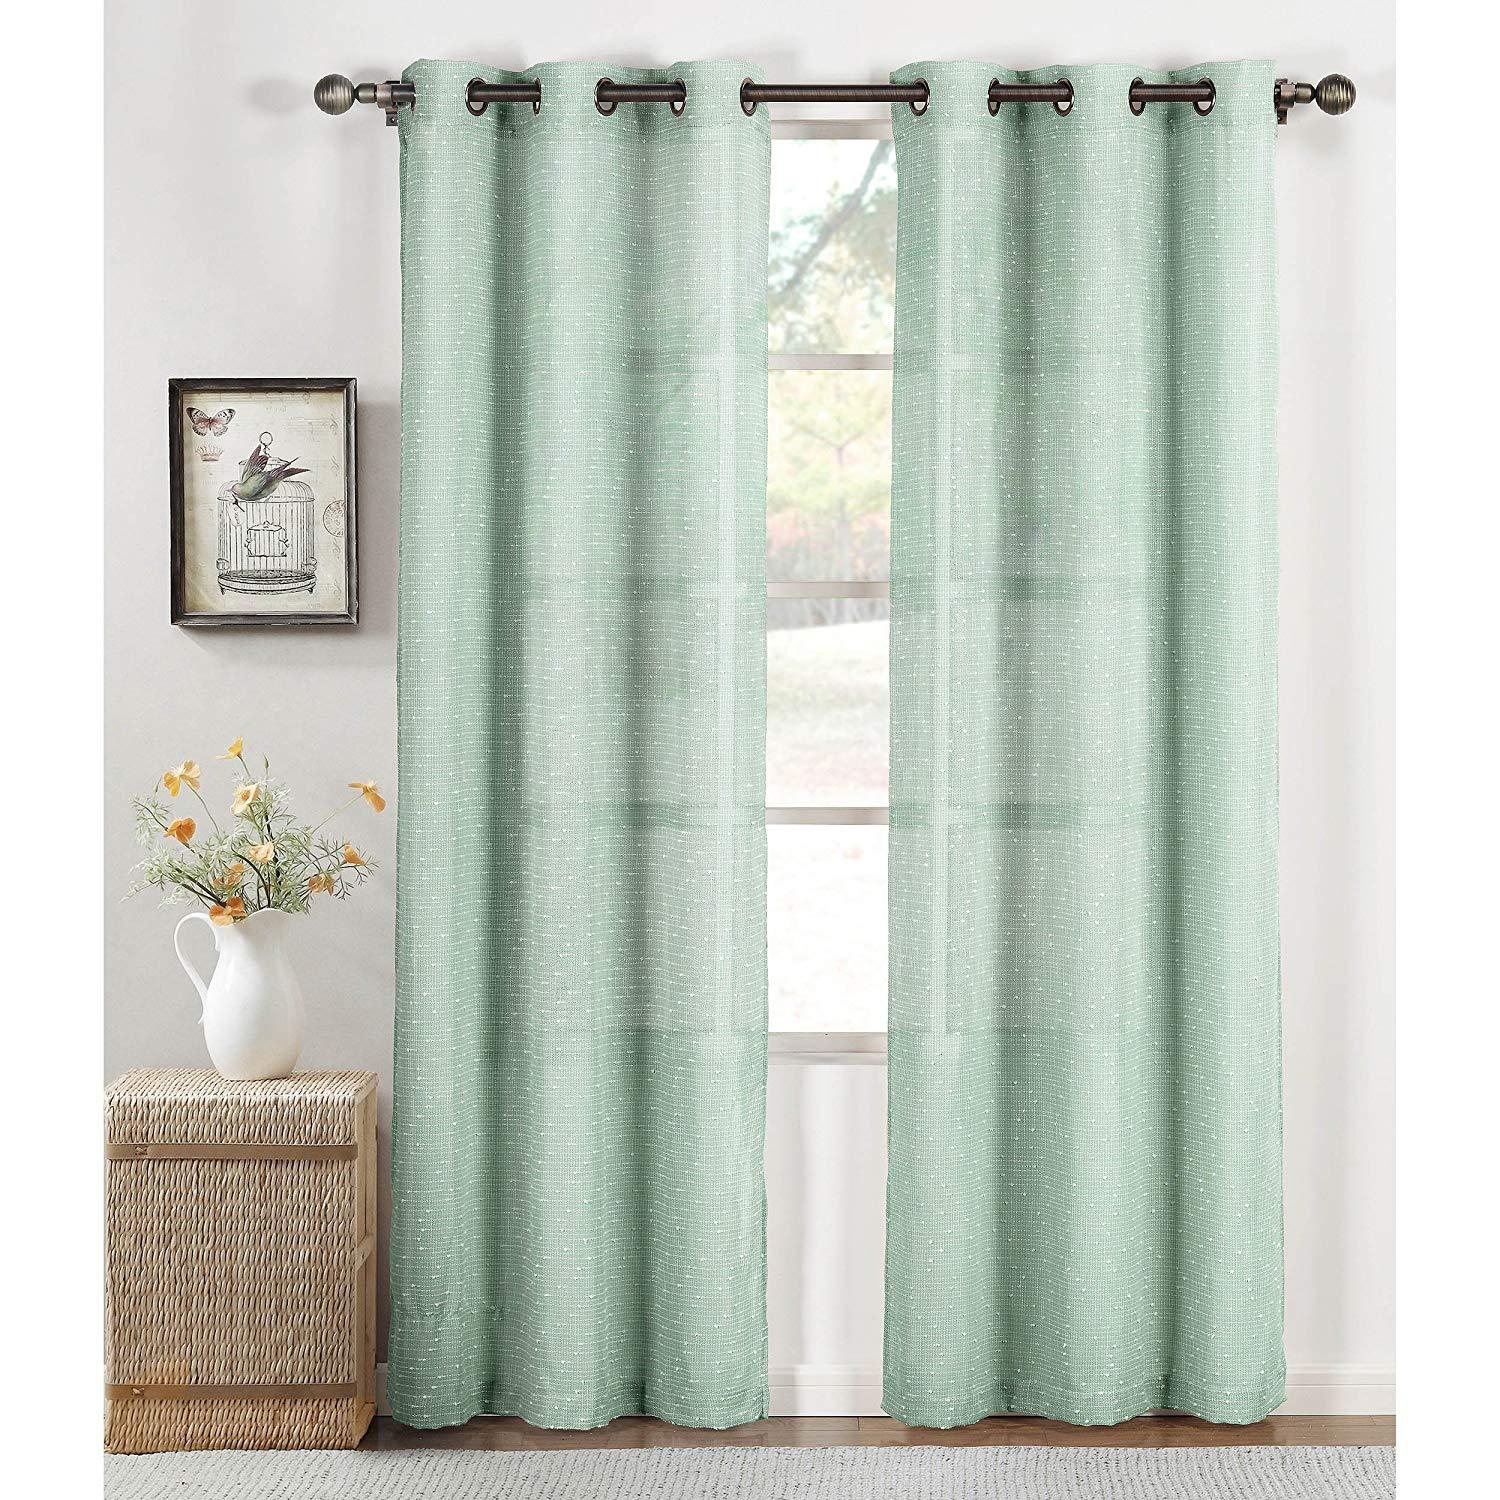 Window Elements Nubby Linen Blend Sheer And 27 Similar Items Regarding Wavy Leaves Embroidered Sheer Extra Wide Grommet Curtain Panels (View 13 of 30)